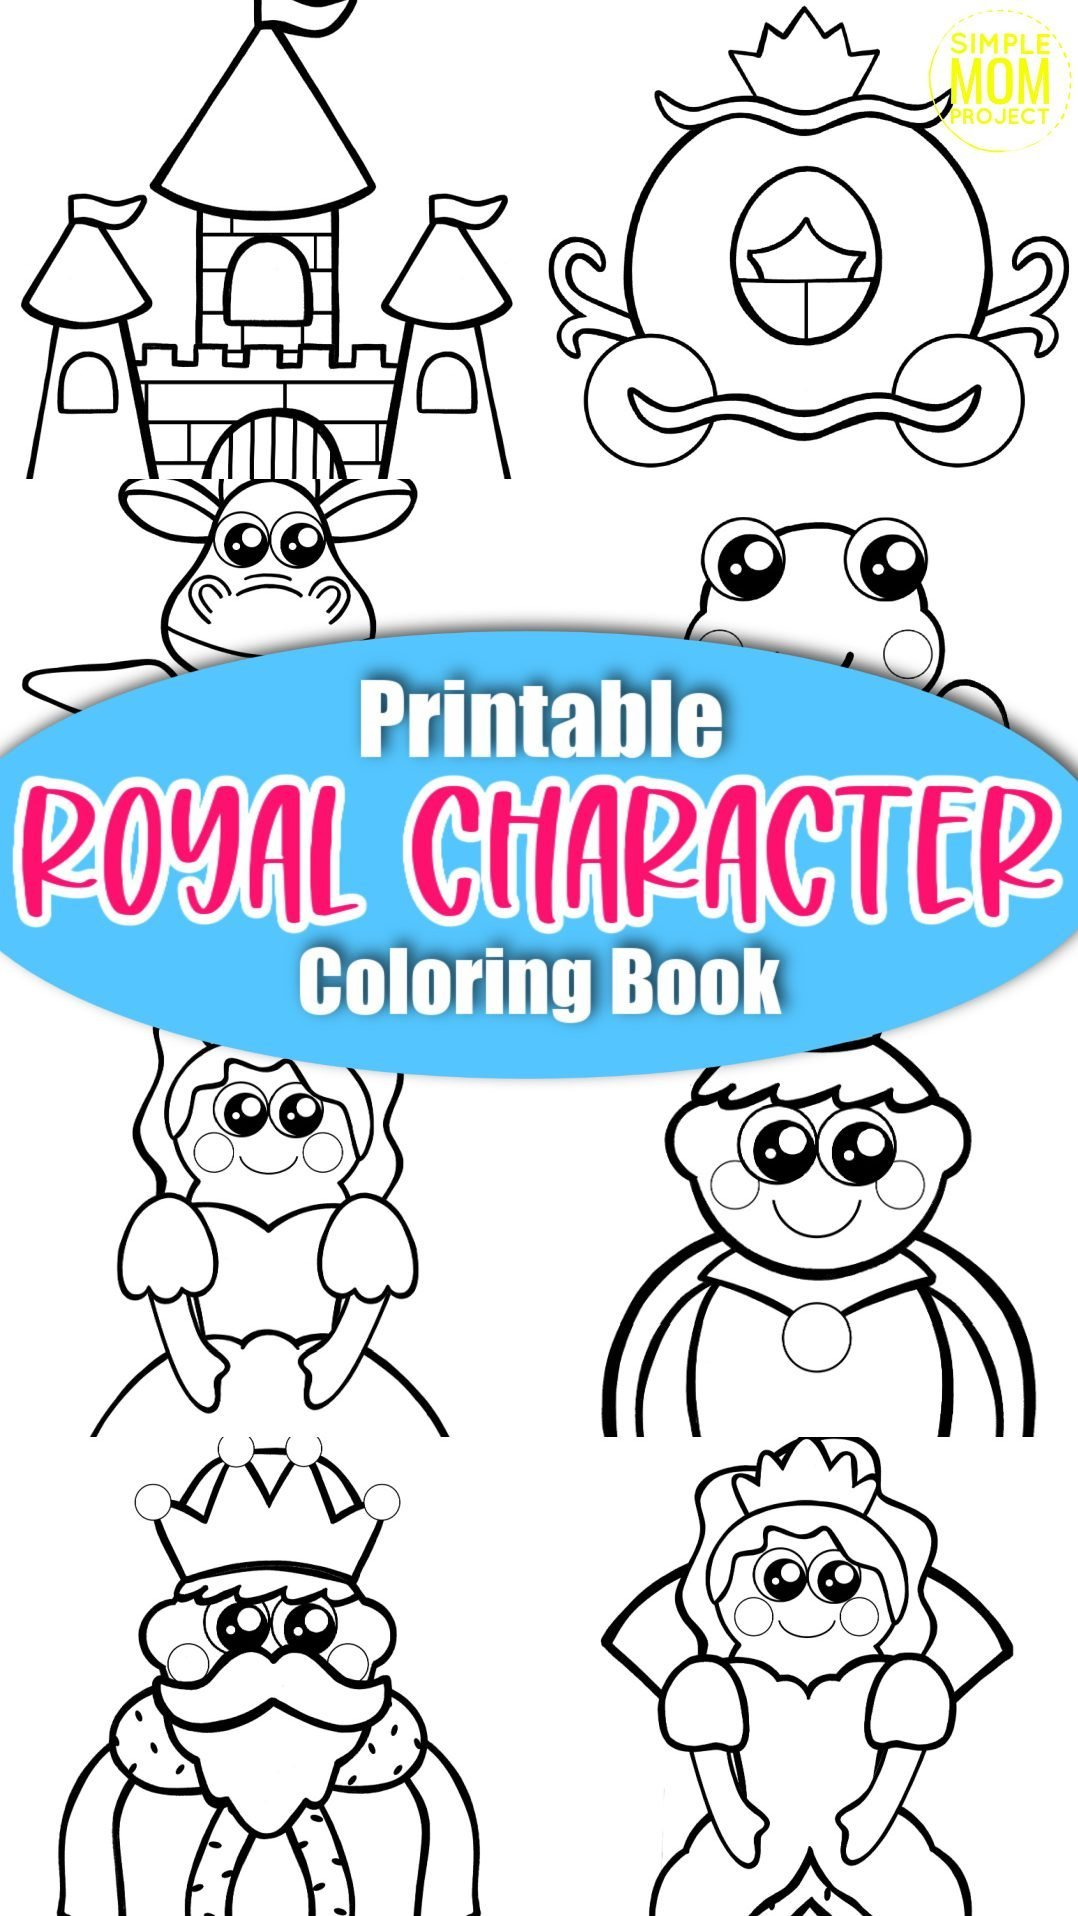 Are you looking for some fun, easy and easy storybook character coloring pages for your kids? This collection includes our most popular printable fantasy character coloring sheets which are perfect for preschool art projects or home school craft classes. From a princess, carriage and horse to a dragon, prince and frog - there's a storybook character printable your kids will love. Simply print the Storybook Character Coloring Book, grab some of your favorite coloring supplies and get to coloring! It's an exciting way to learn about the beautiful animals in our oceans! #StorybookCrafts #StorybookColoringPage